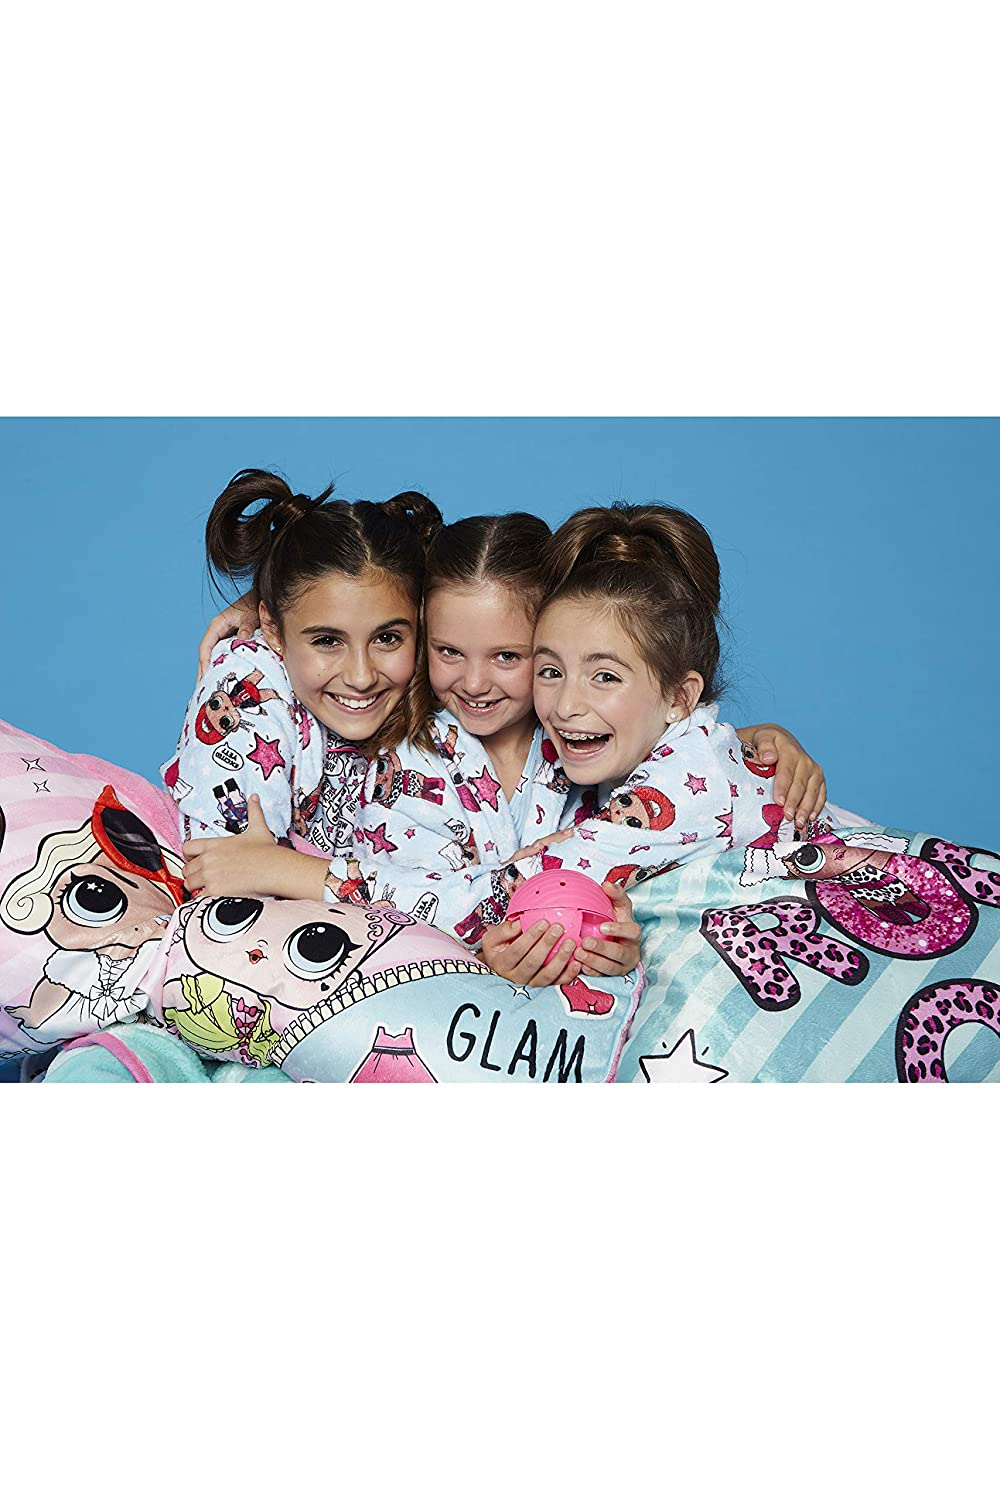 LOL Surprise Excited Yet Glam Girl Pajama Robe